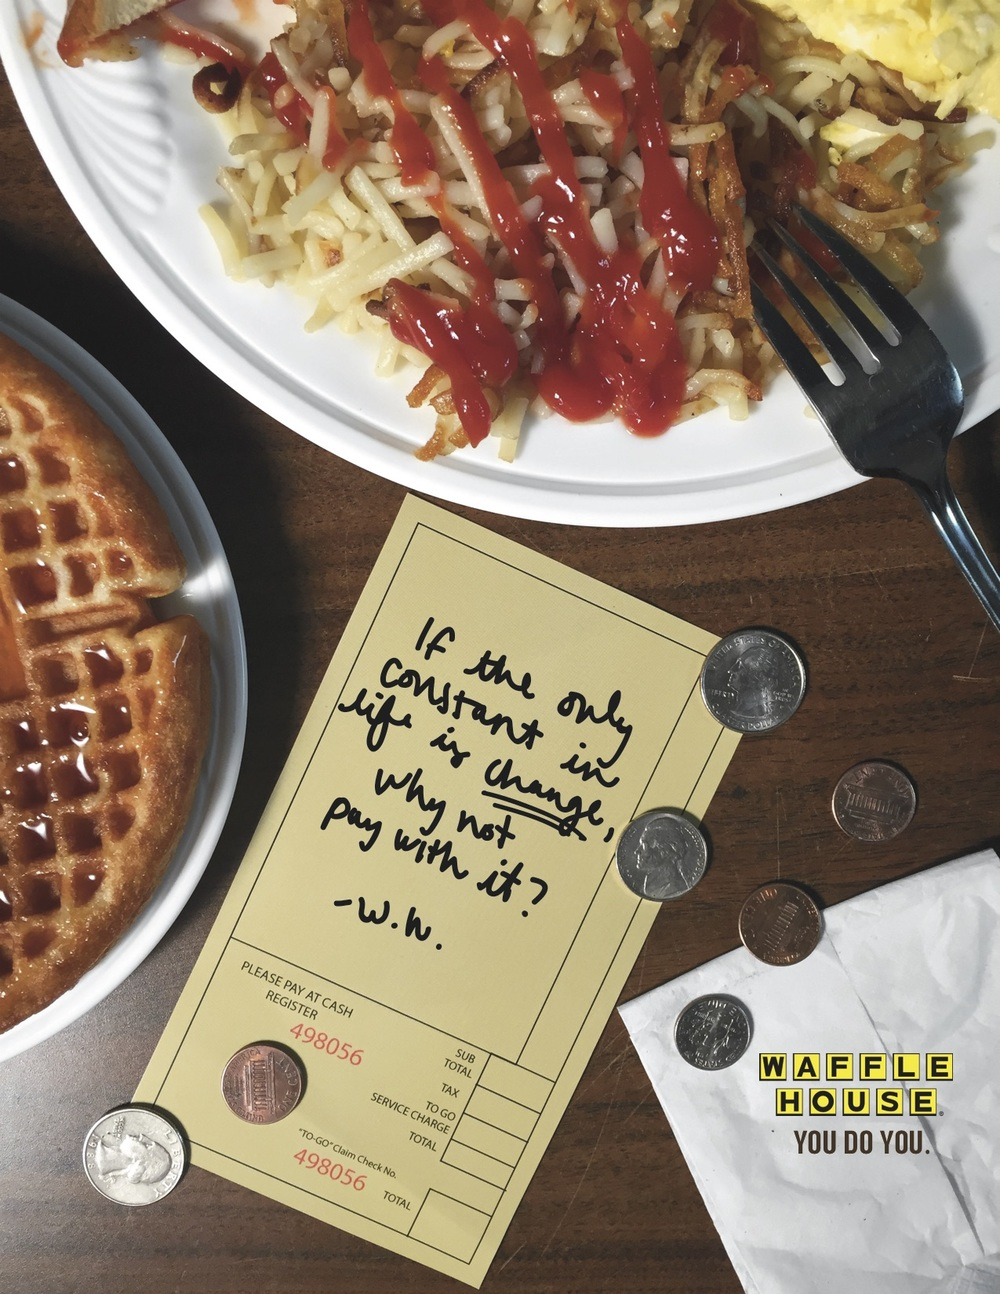 WaffleHouseChange2.jpg